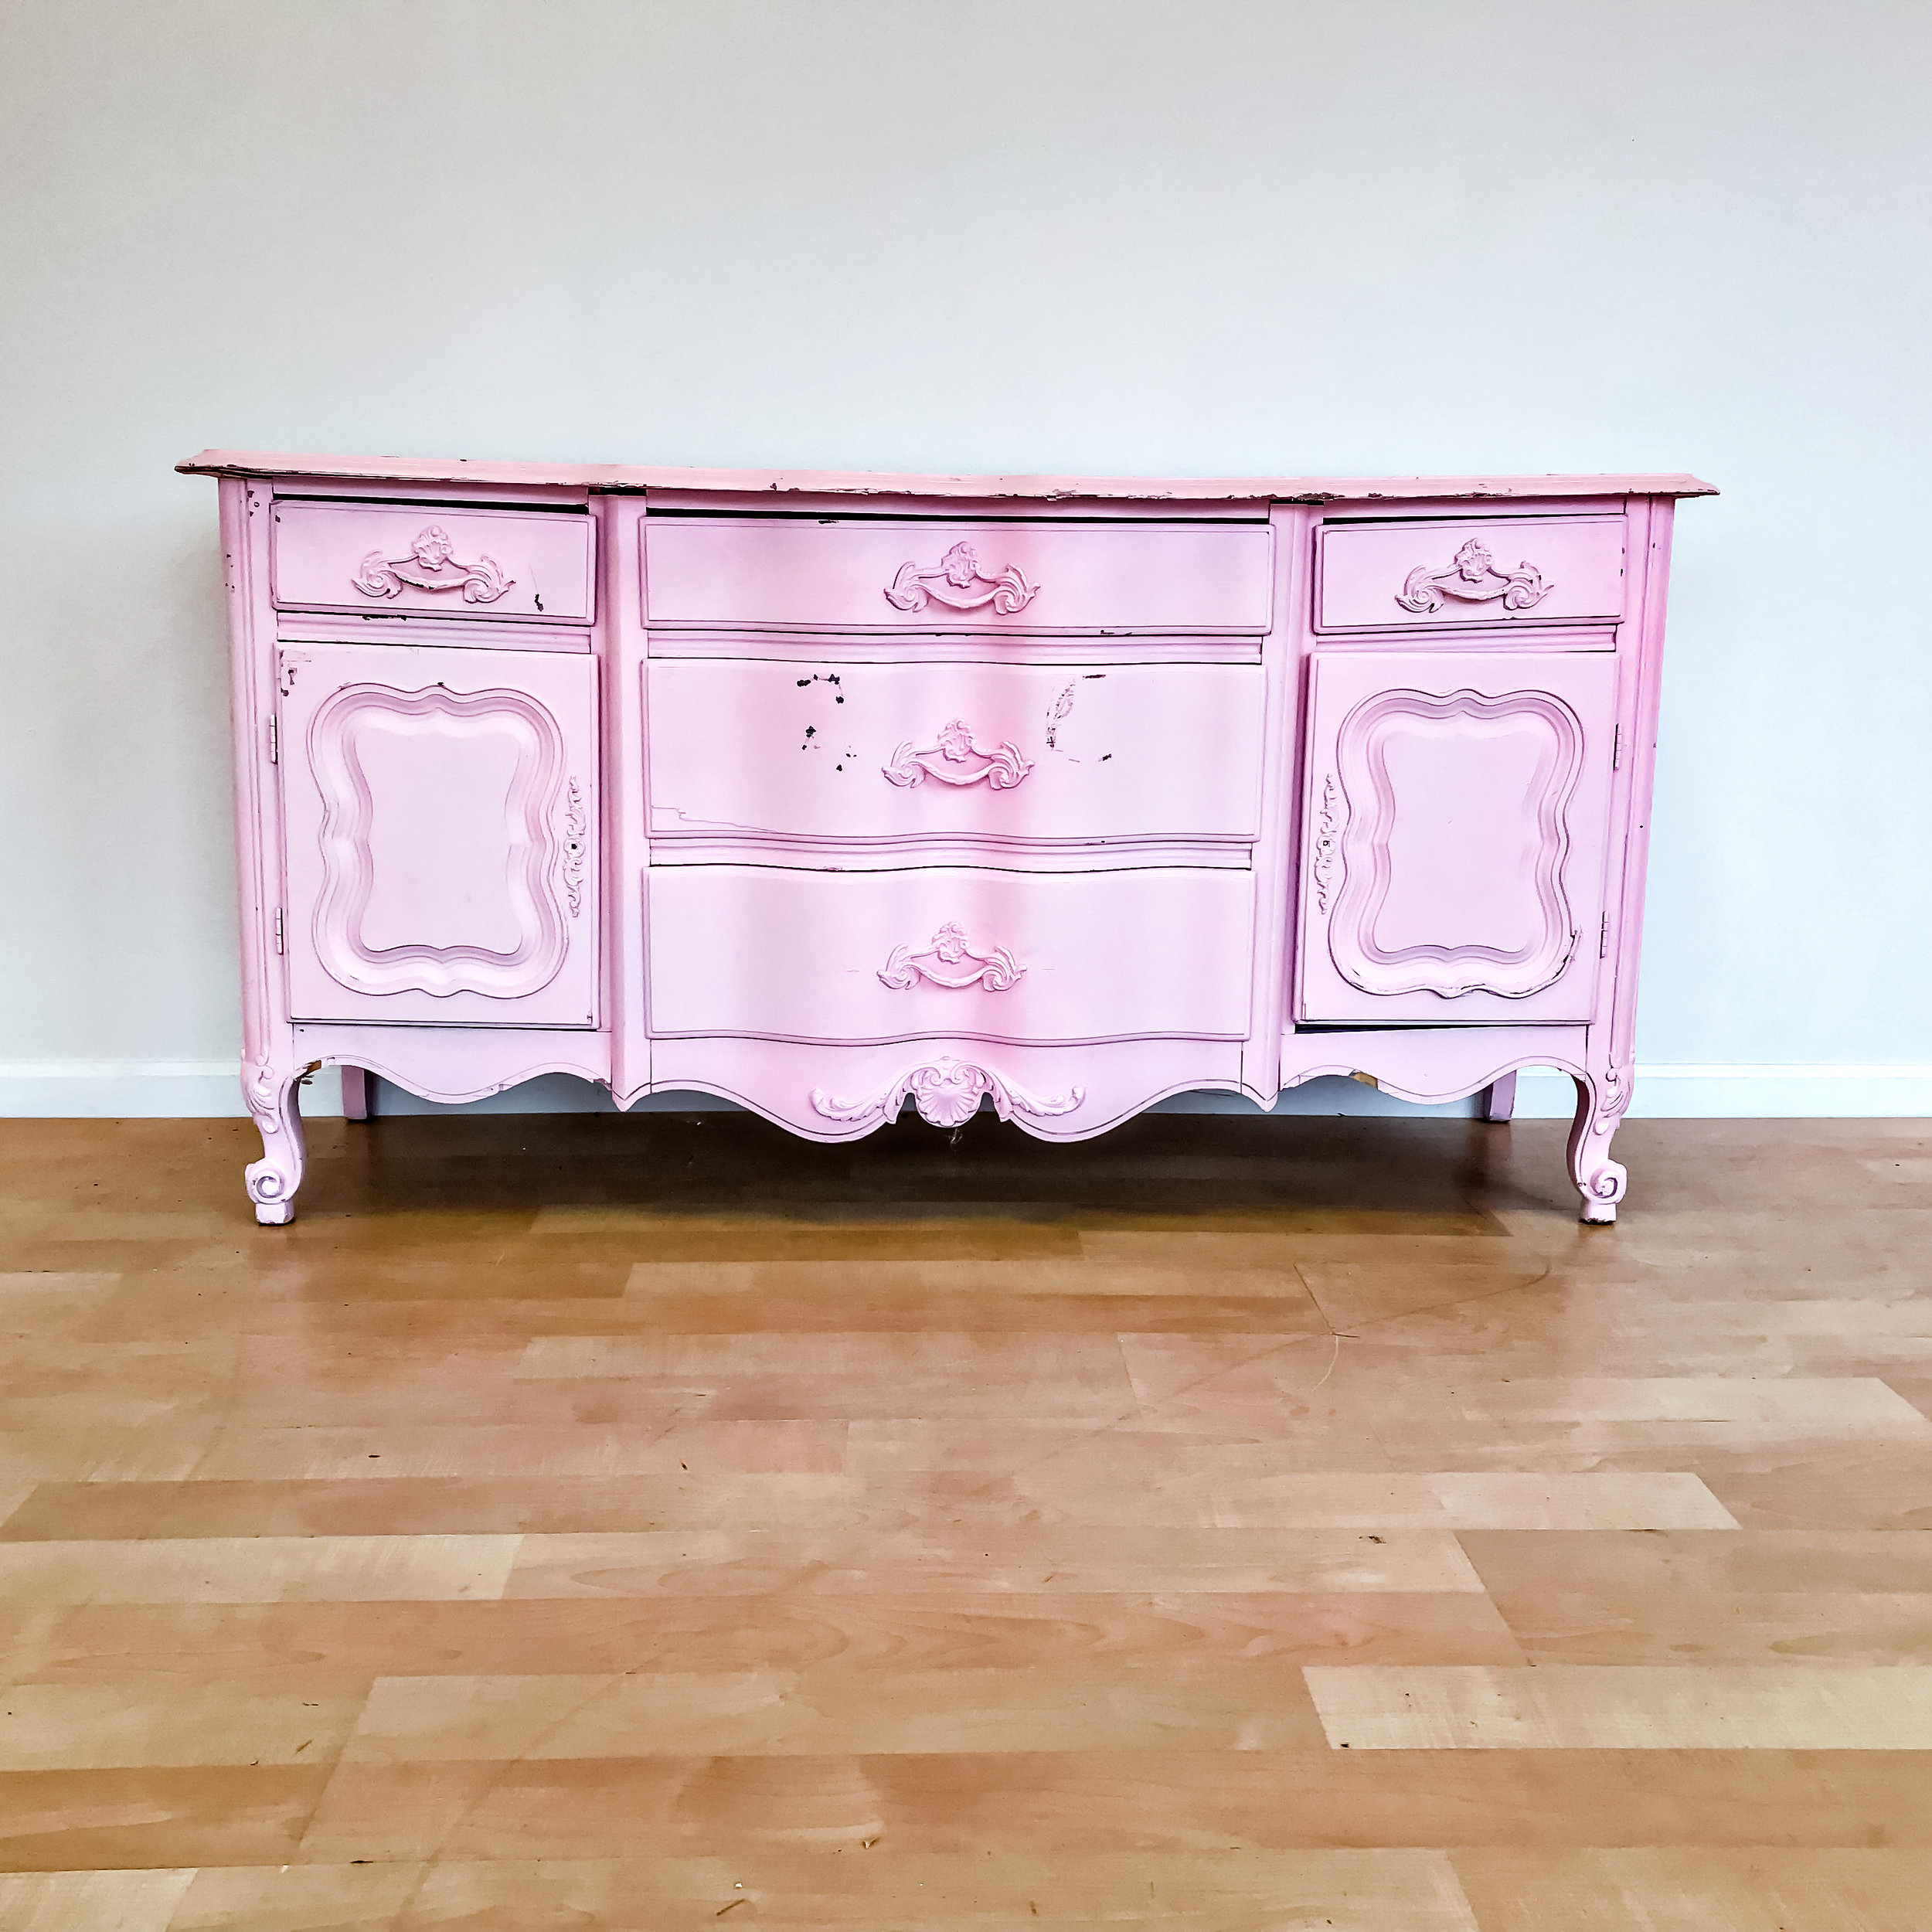 renee landry events pink buffet dresser display decor wedding rentals.jpg